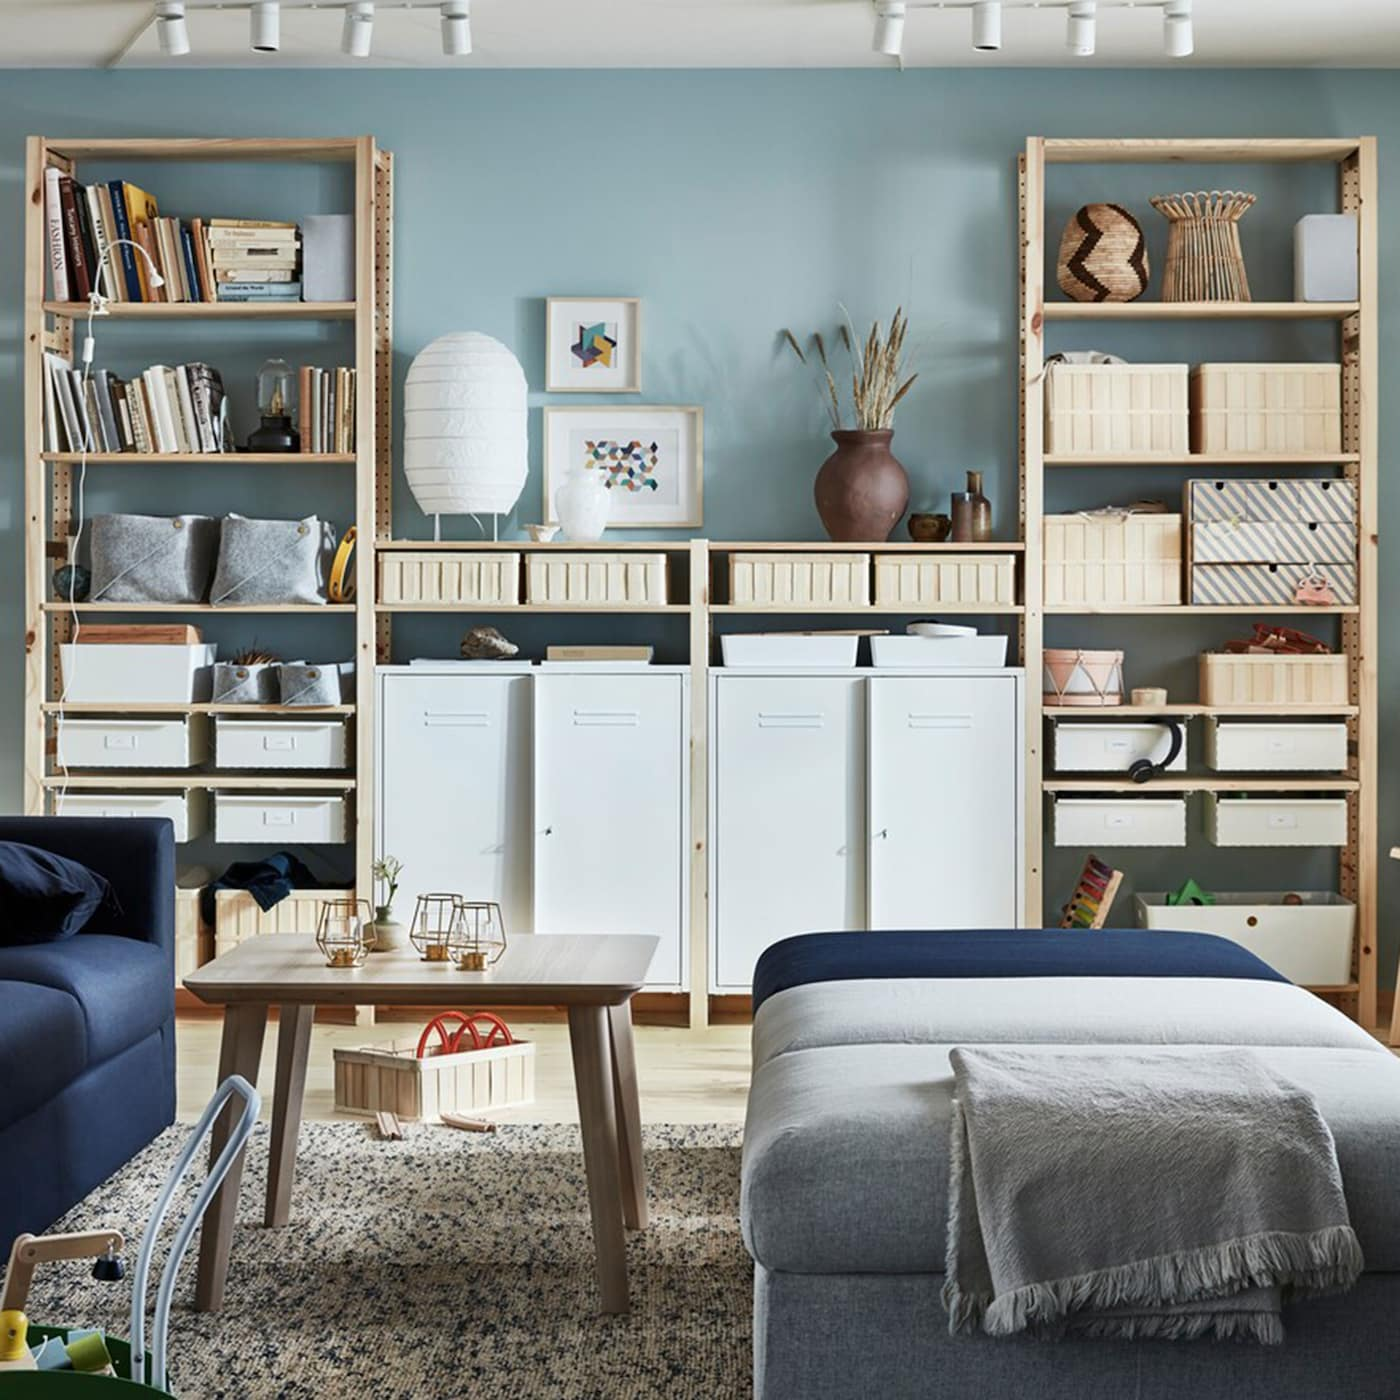 Organise your living room with IKEA IVAR furniture storage system. The light pine wood shelves are customisable to fit many different box heights.